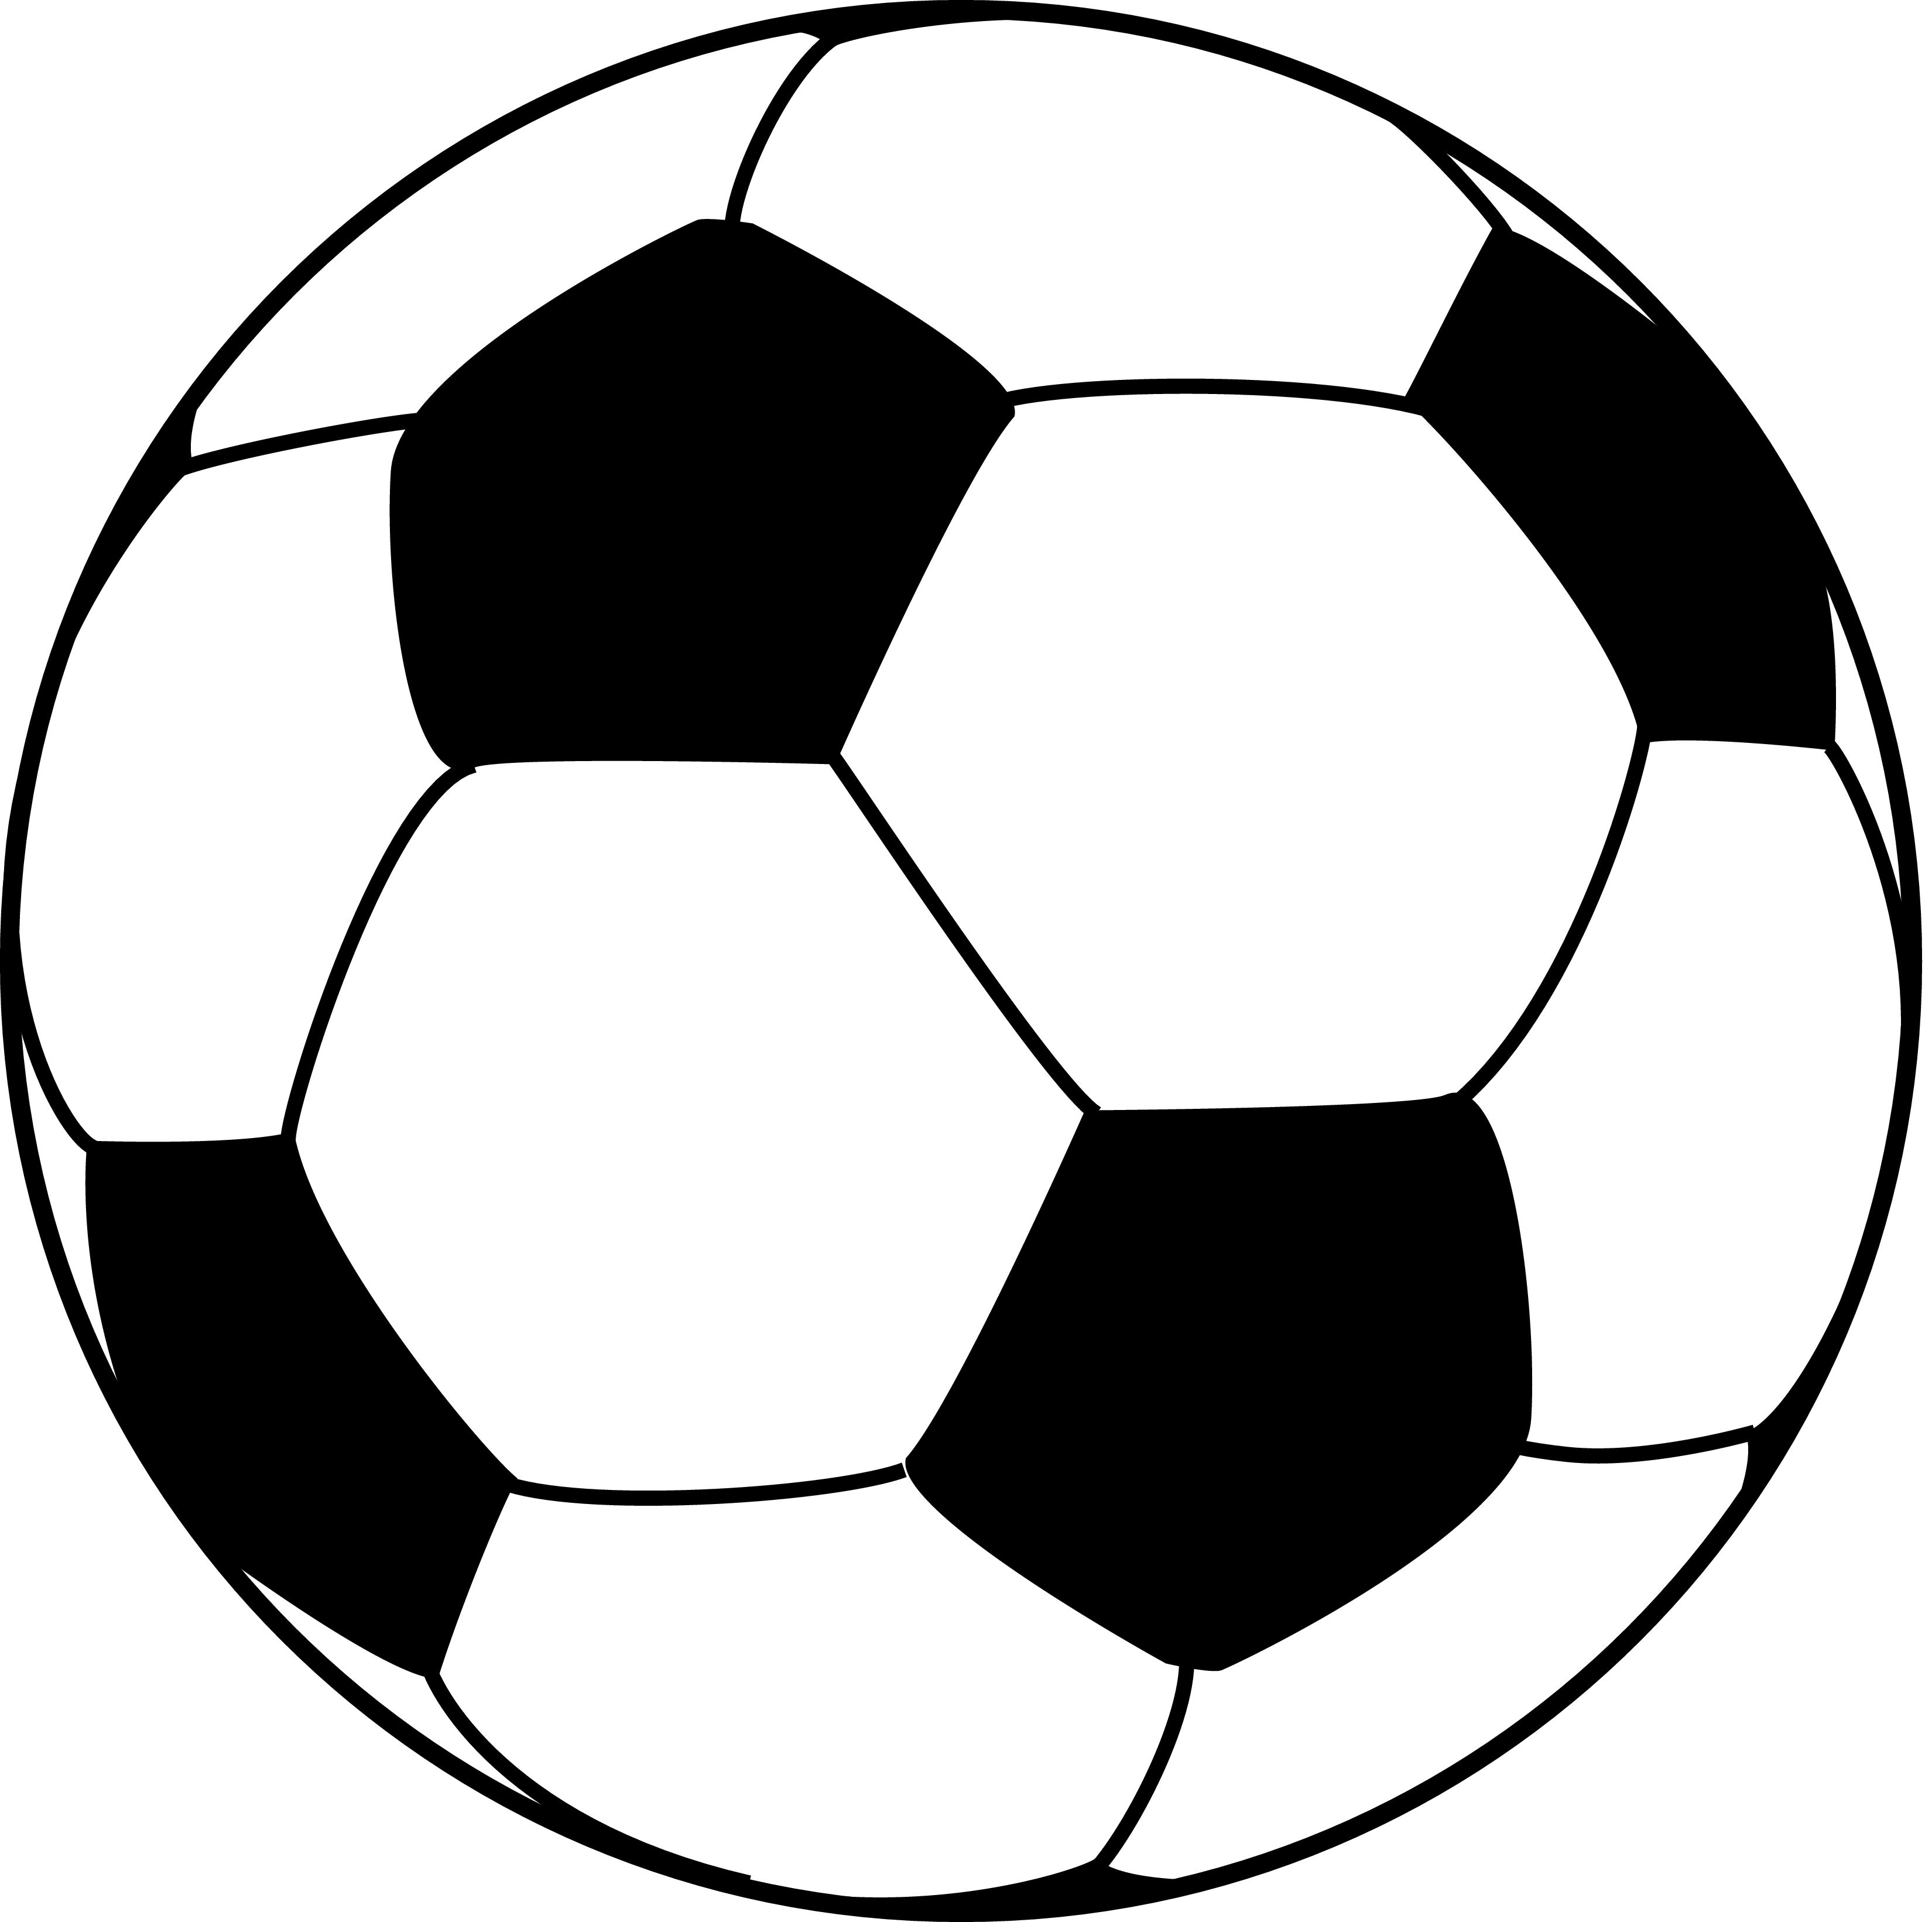 Soccer ball clipart vector free.